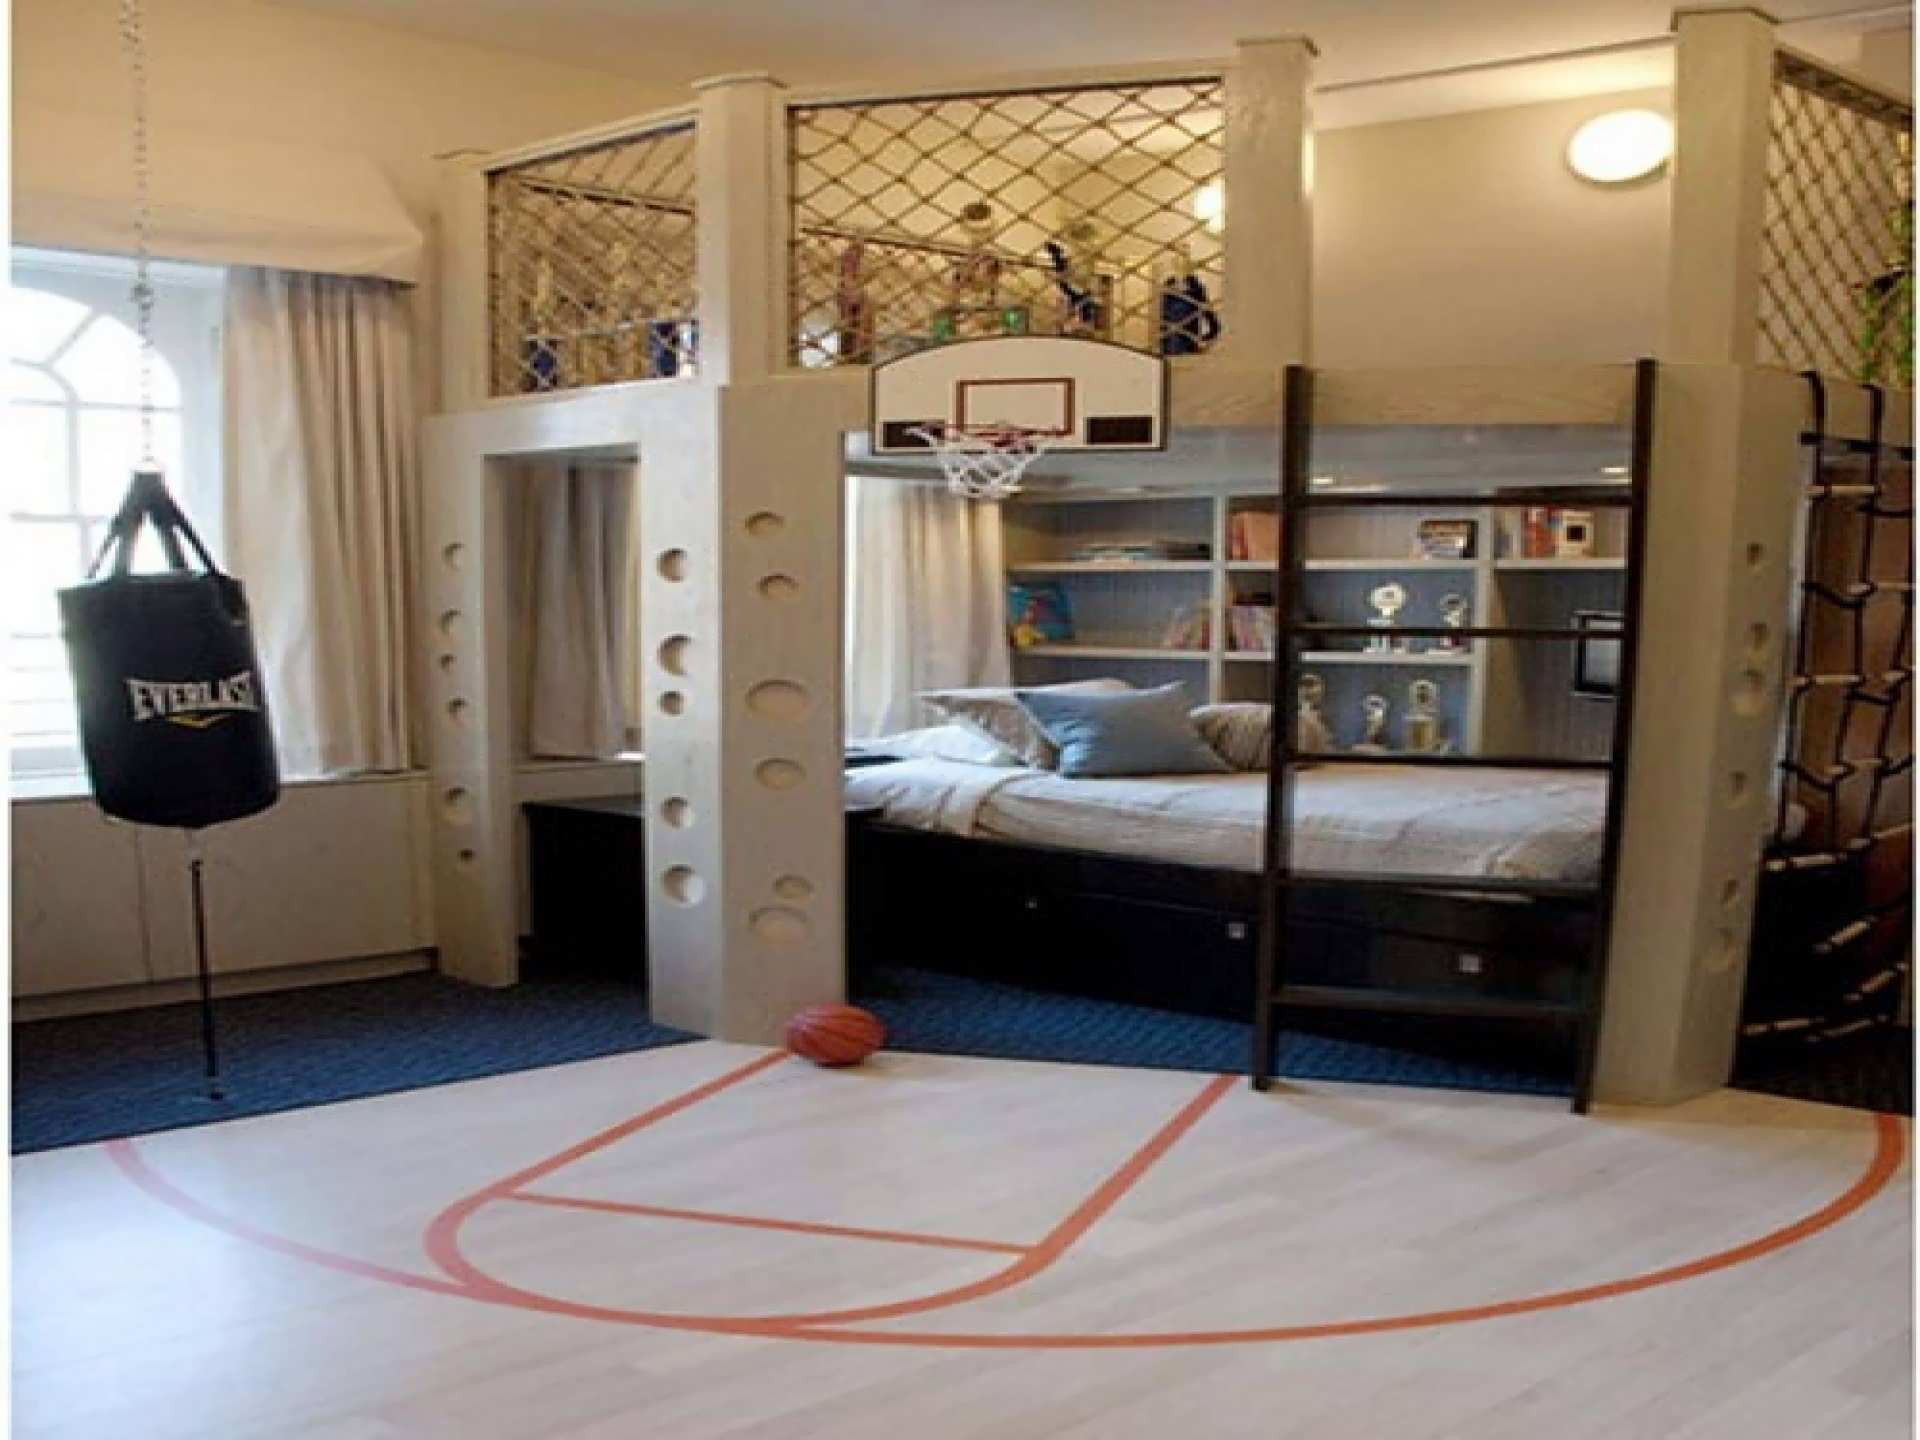 Basket Ball Theme Bed Room For Boys With Brown Wooden Bunk Using Storage Drawer Also Biik Shelves On Cream Painted Wall Cool Bedroom